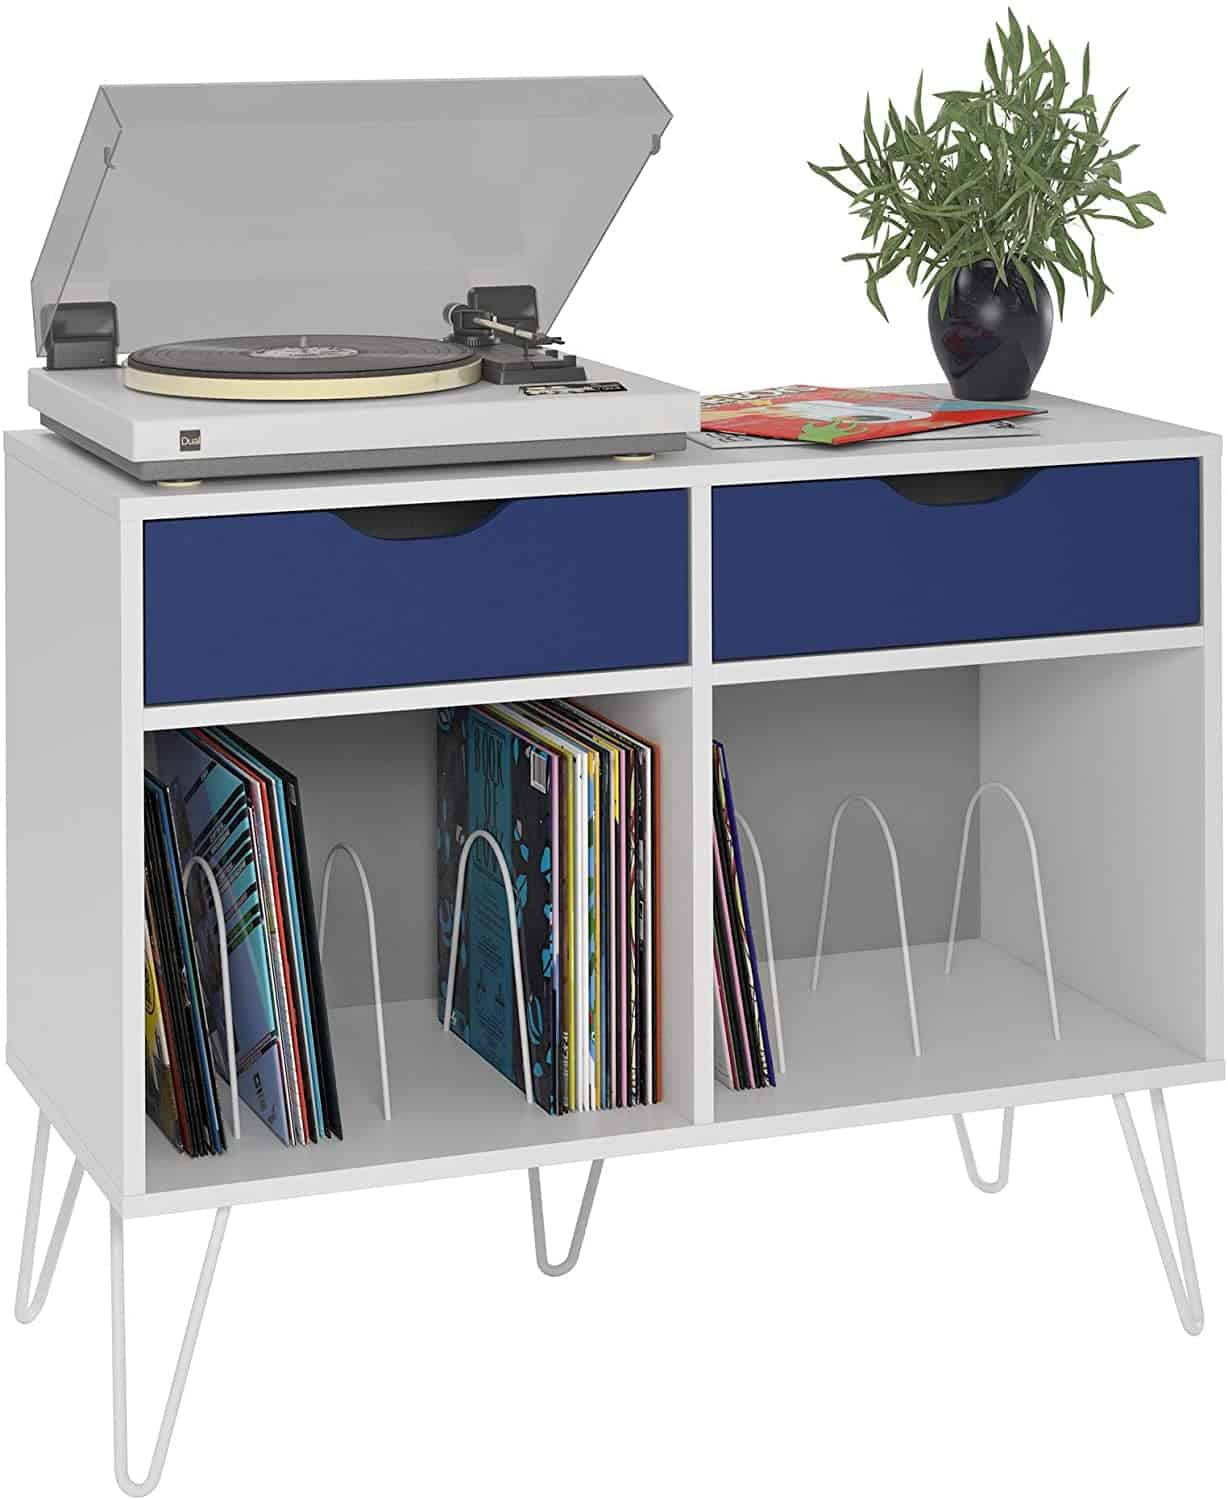 Novogratz Record Player Stand with Drawers Review (White/Blue)